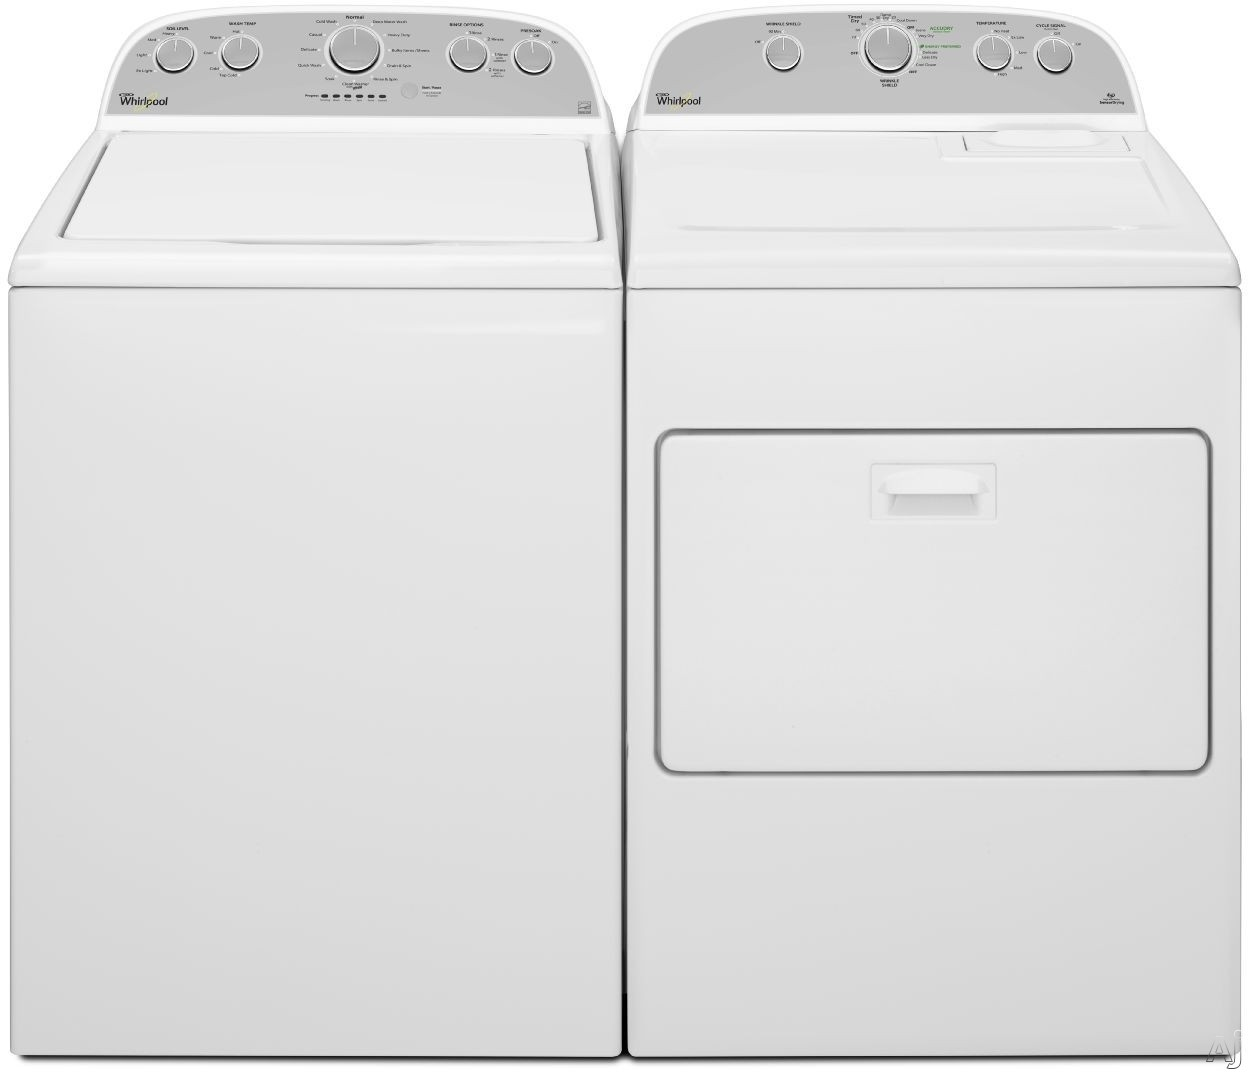 whirlpool wtw5000dw 28 top load washer with 4 3 cu ft capacity 12 wash cycles low profile. Black Bedroom Furniture Sets. Home Design Ideas